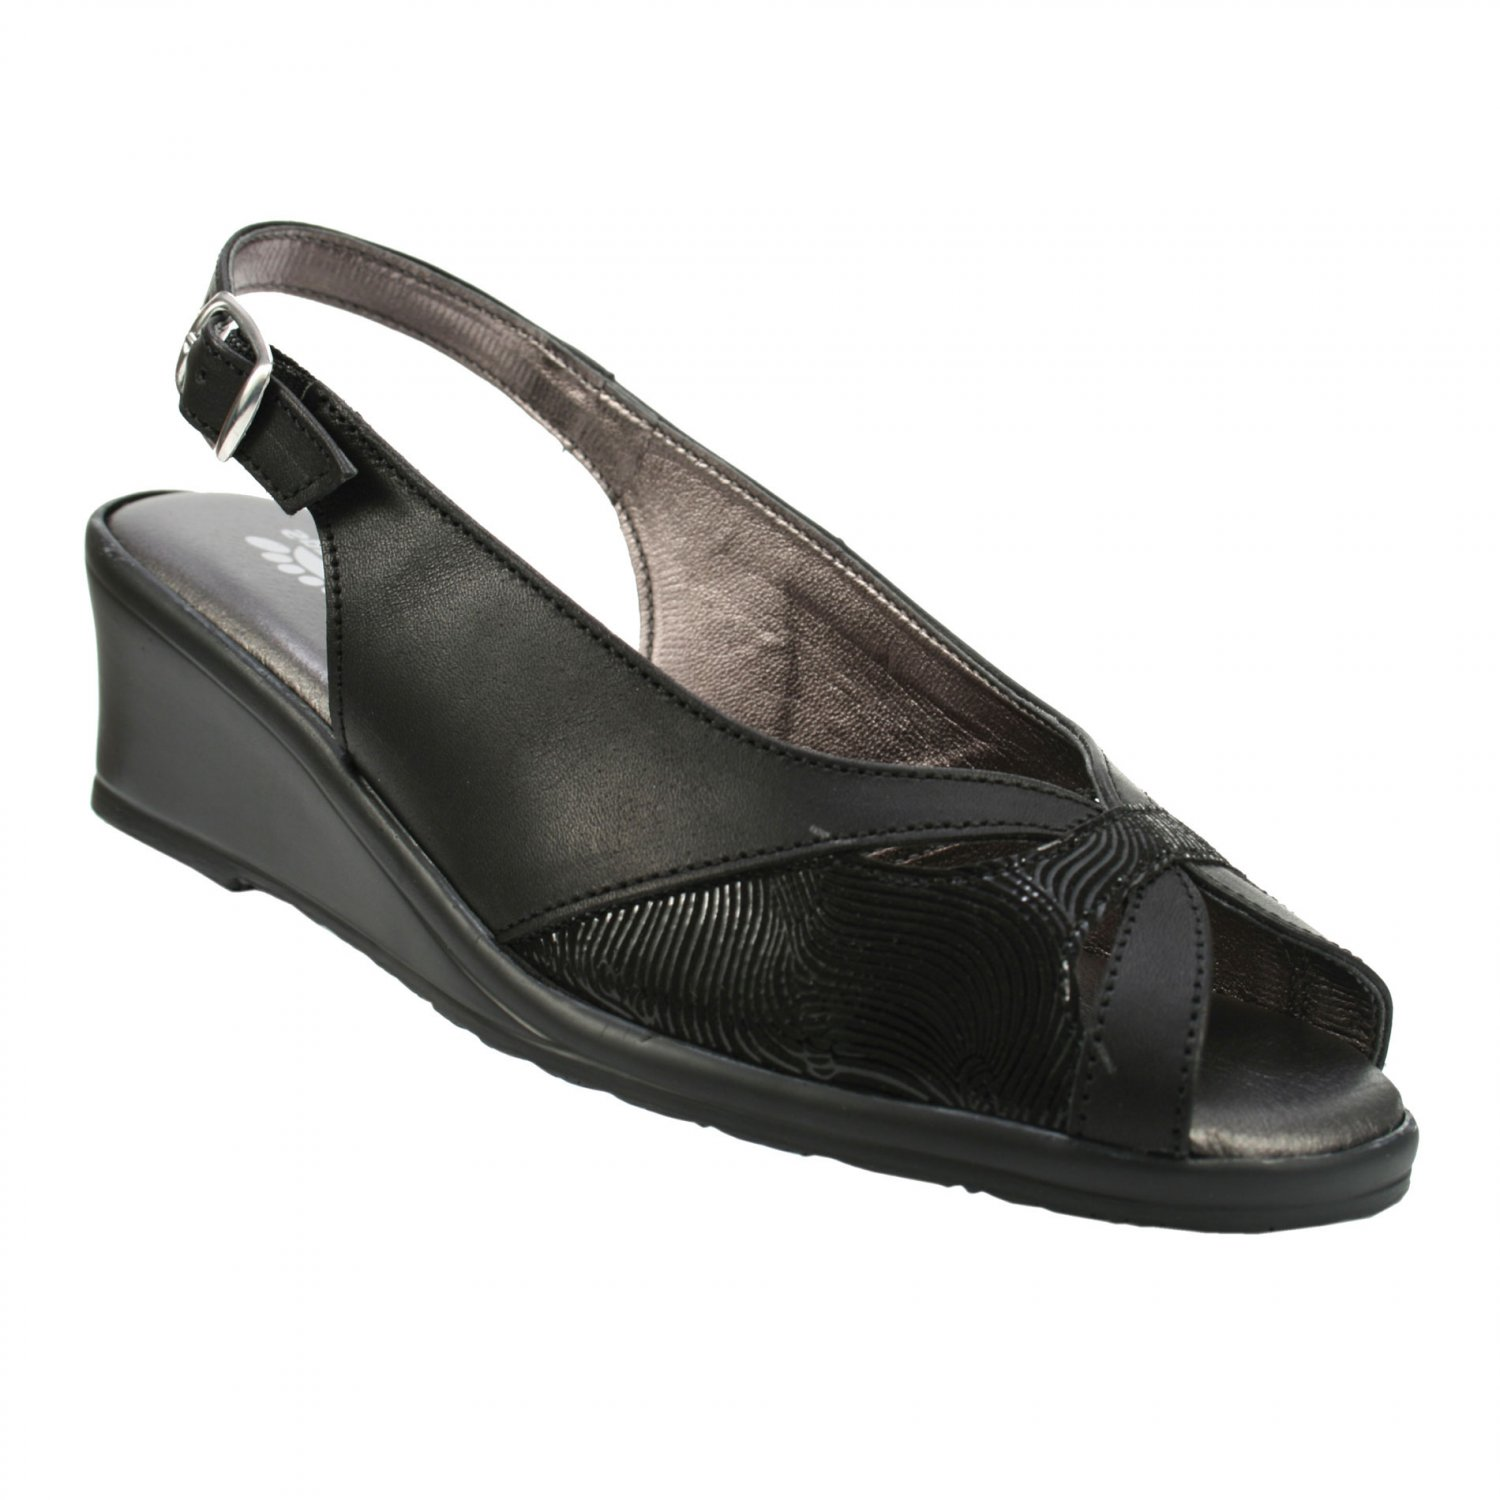 Spring Step GLENDA Sandals Shoes All Sizes & Colors $8